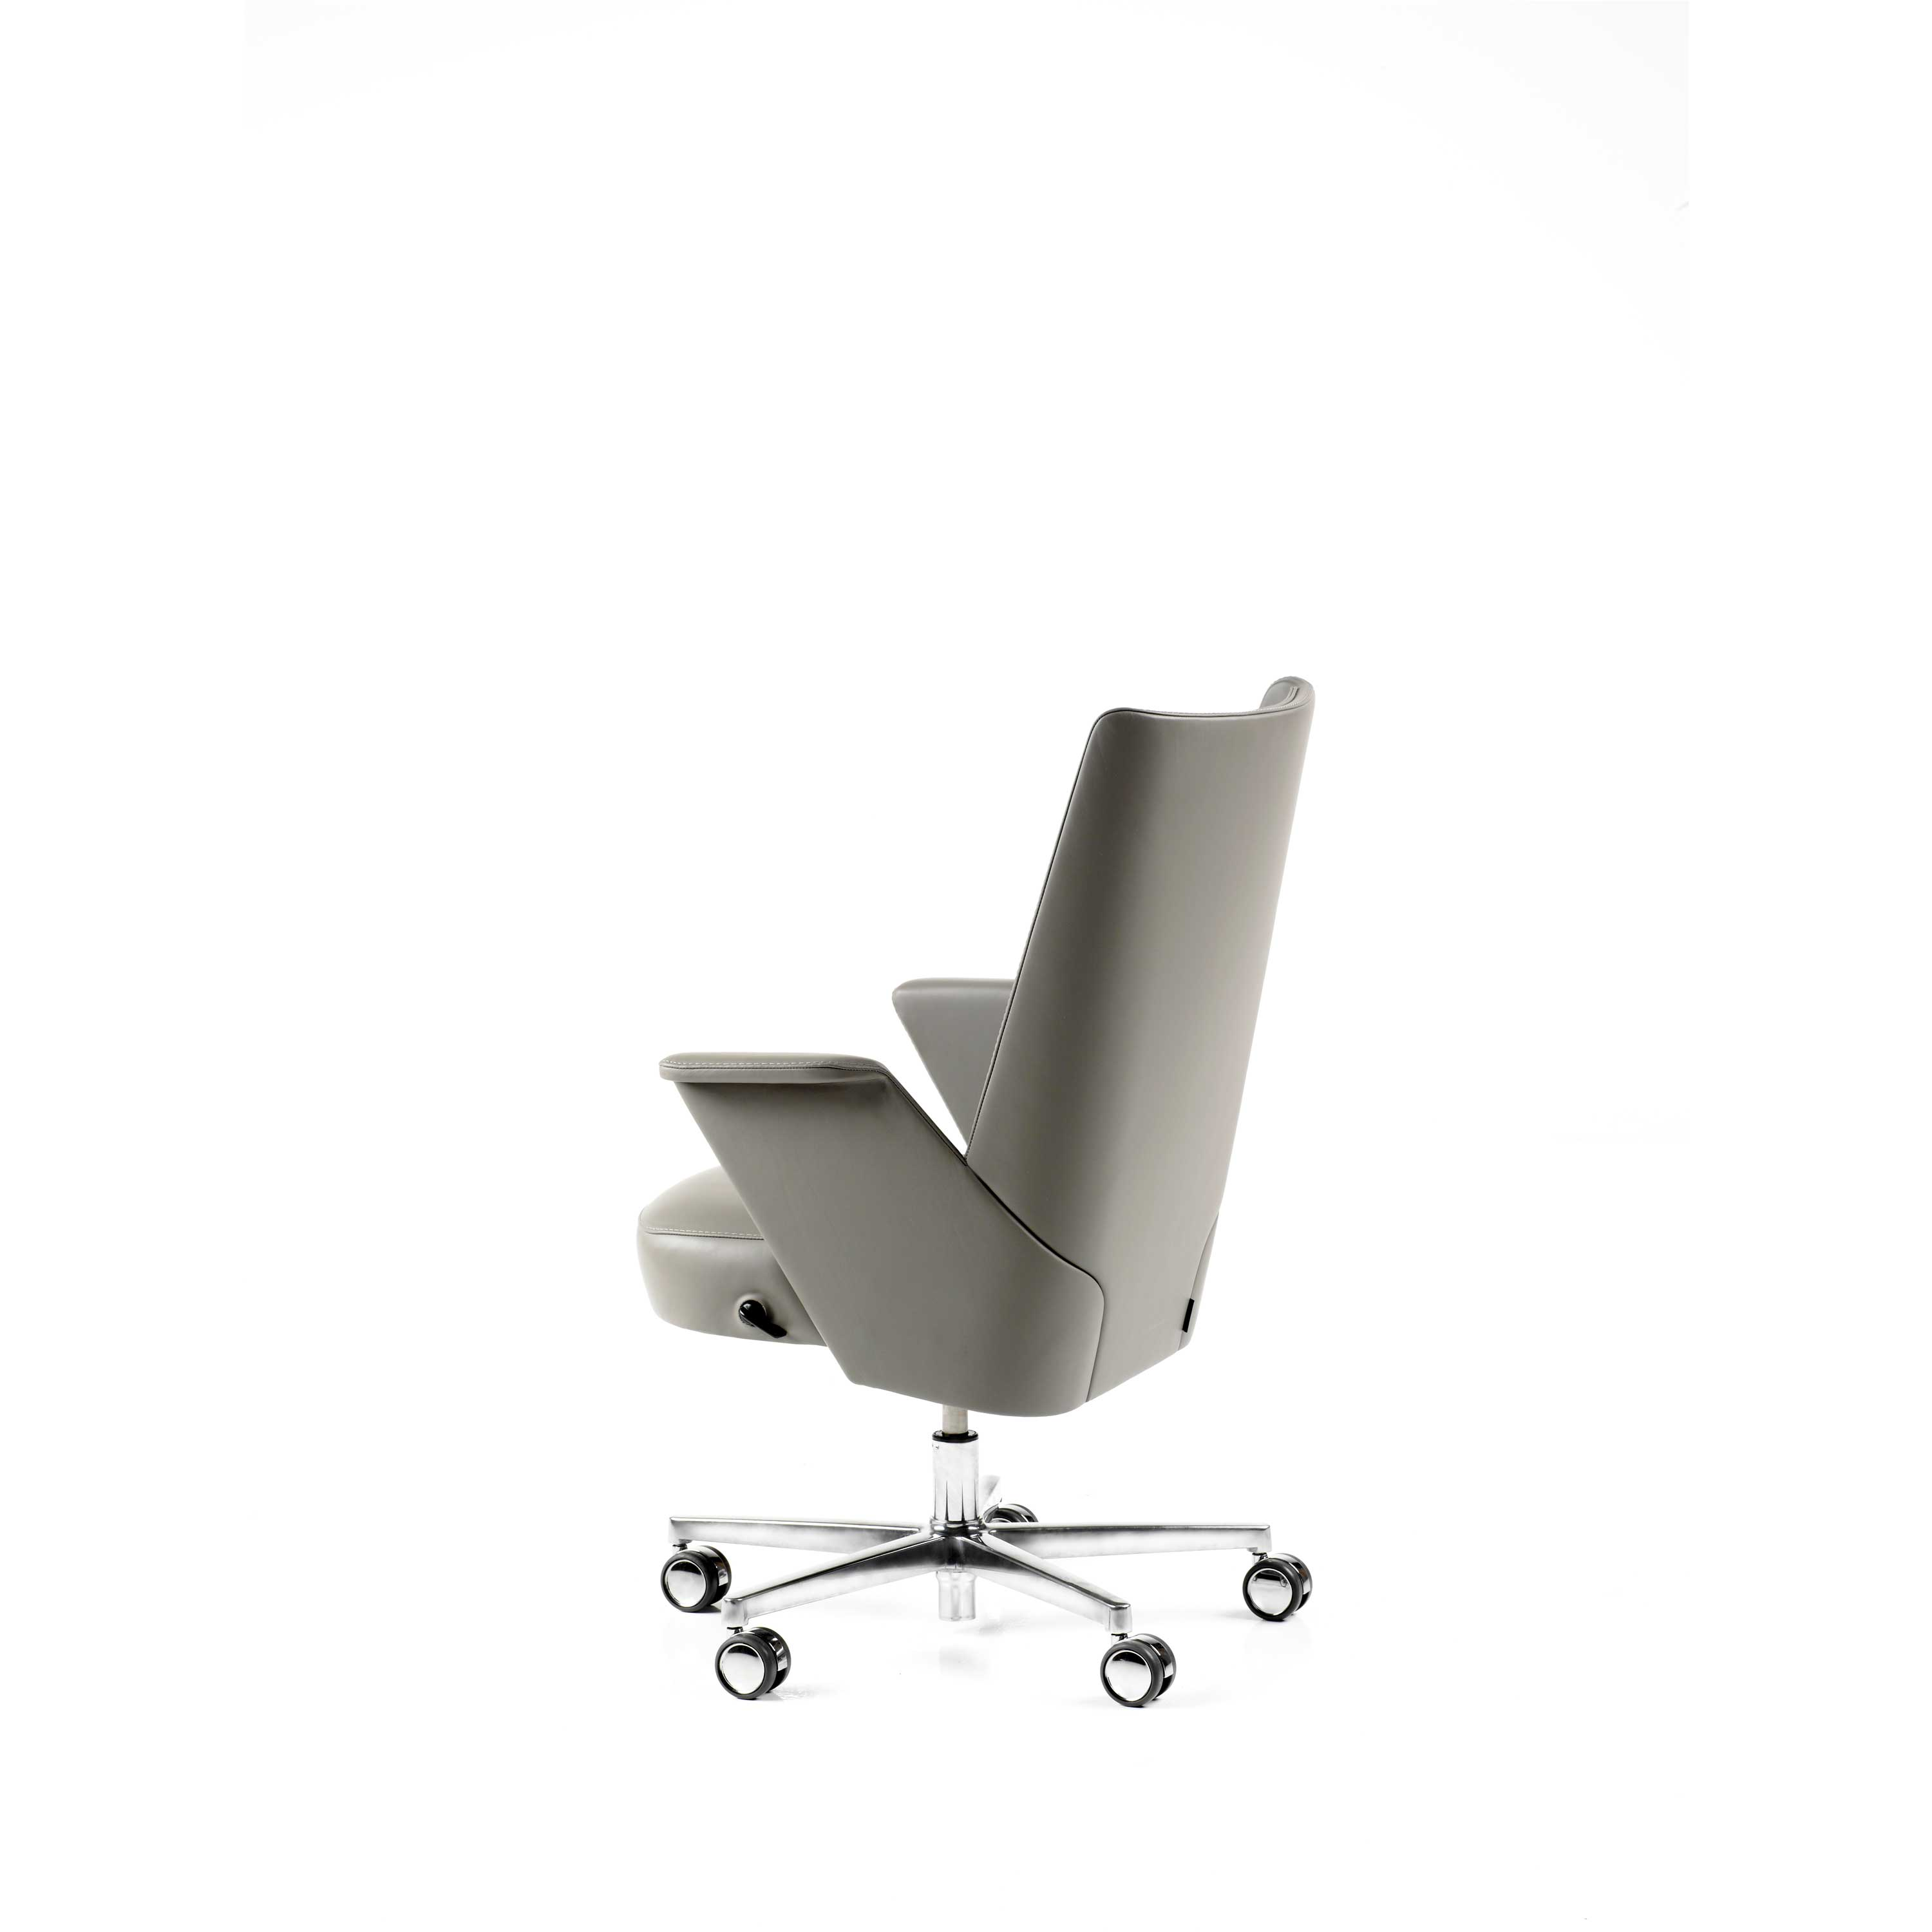 13S_Estel_Comfort&Relax_Office-Chair_Embrasse